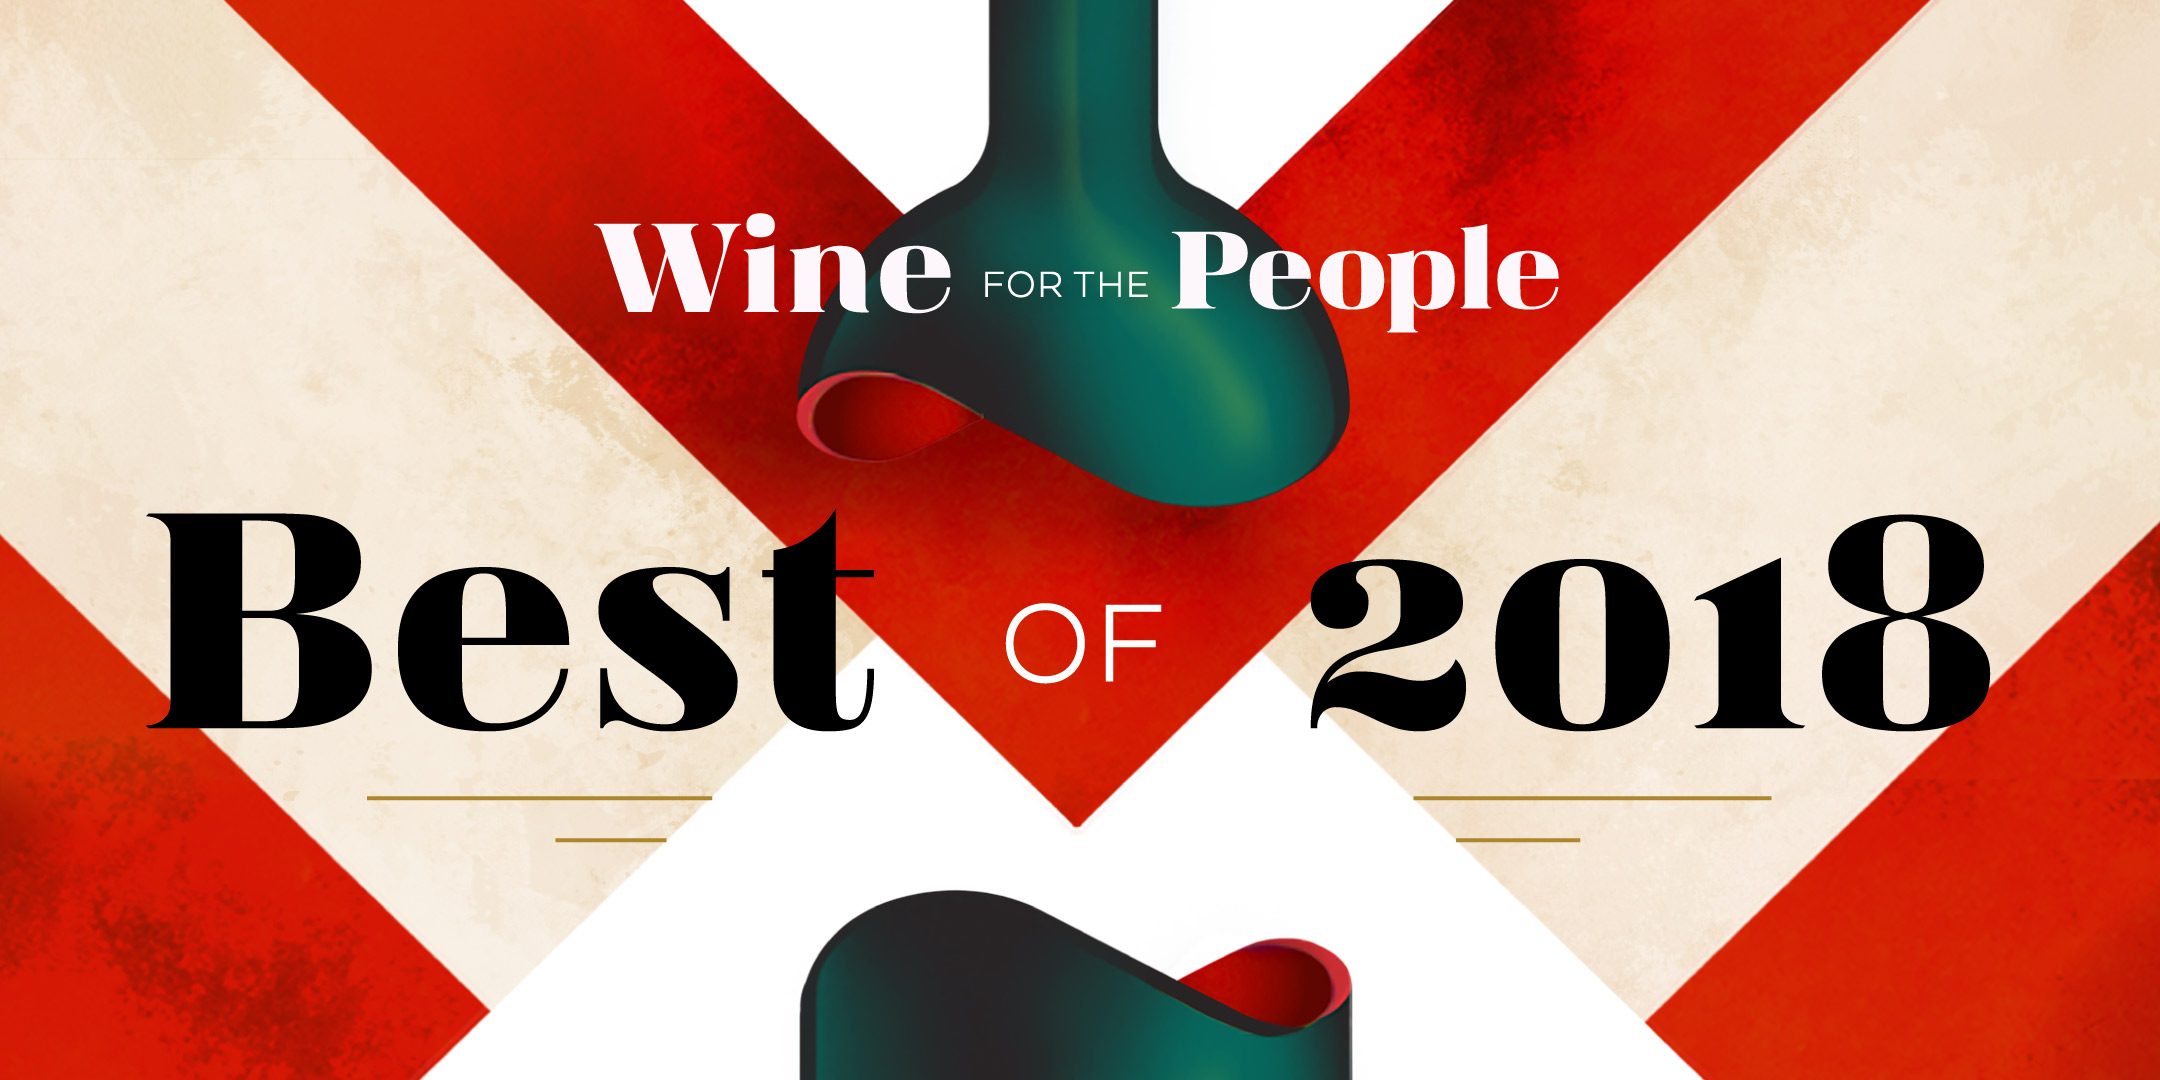 Wine for the People - Best of 2018